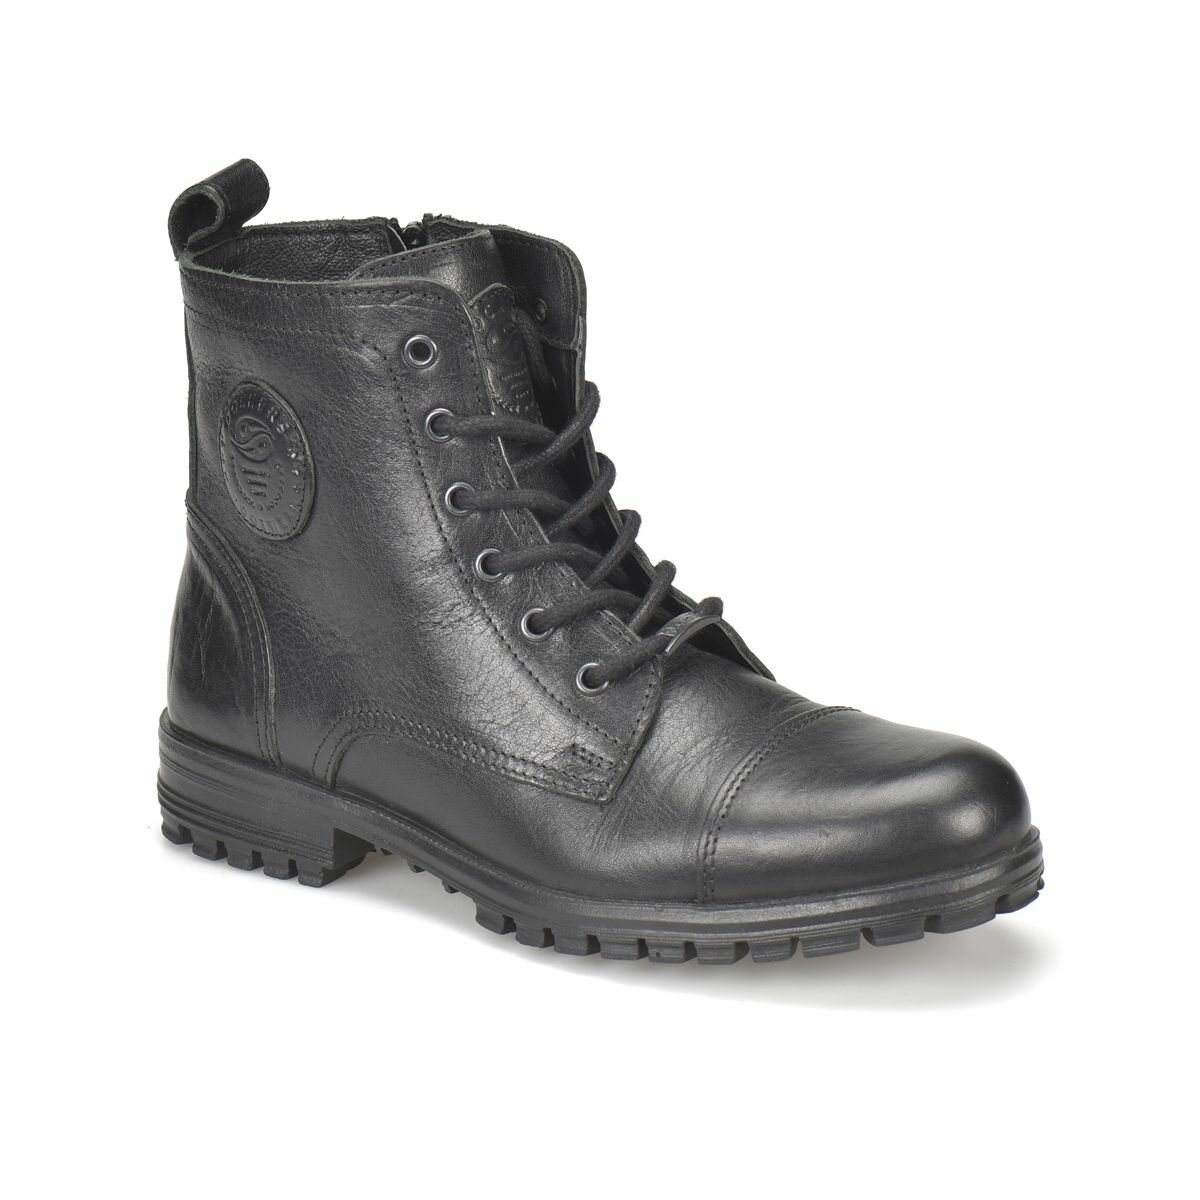 FLO 211352 Black Men Boots By Dockers The Gerle